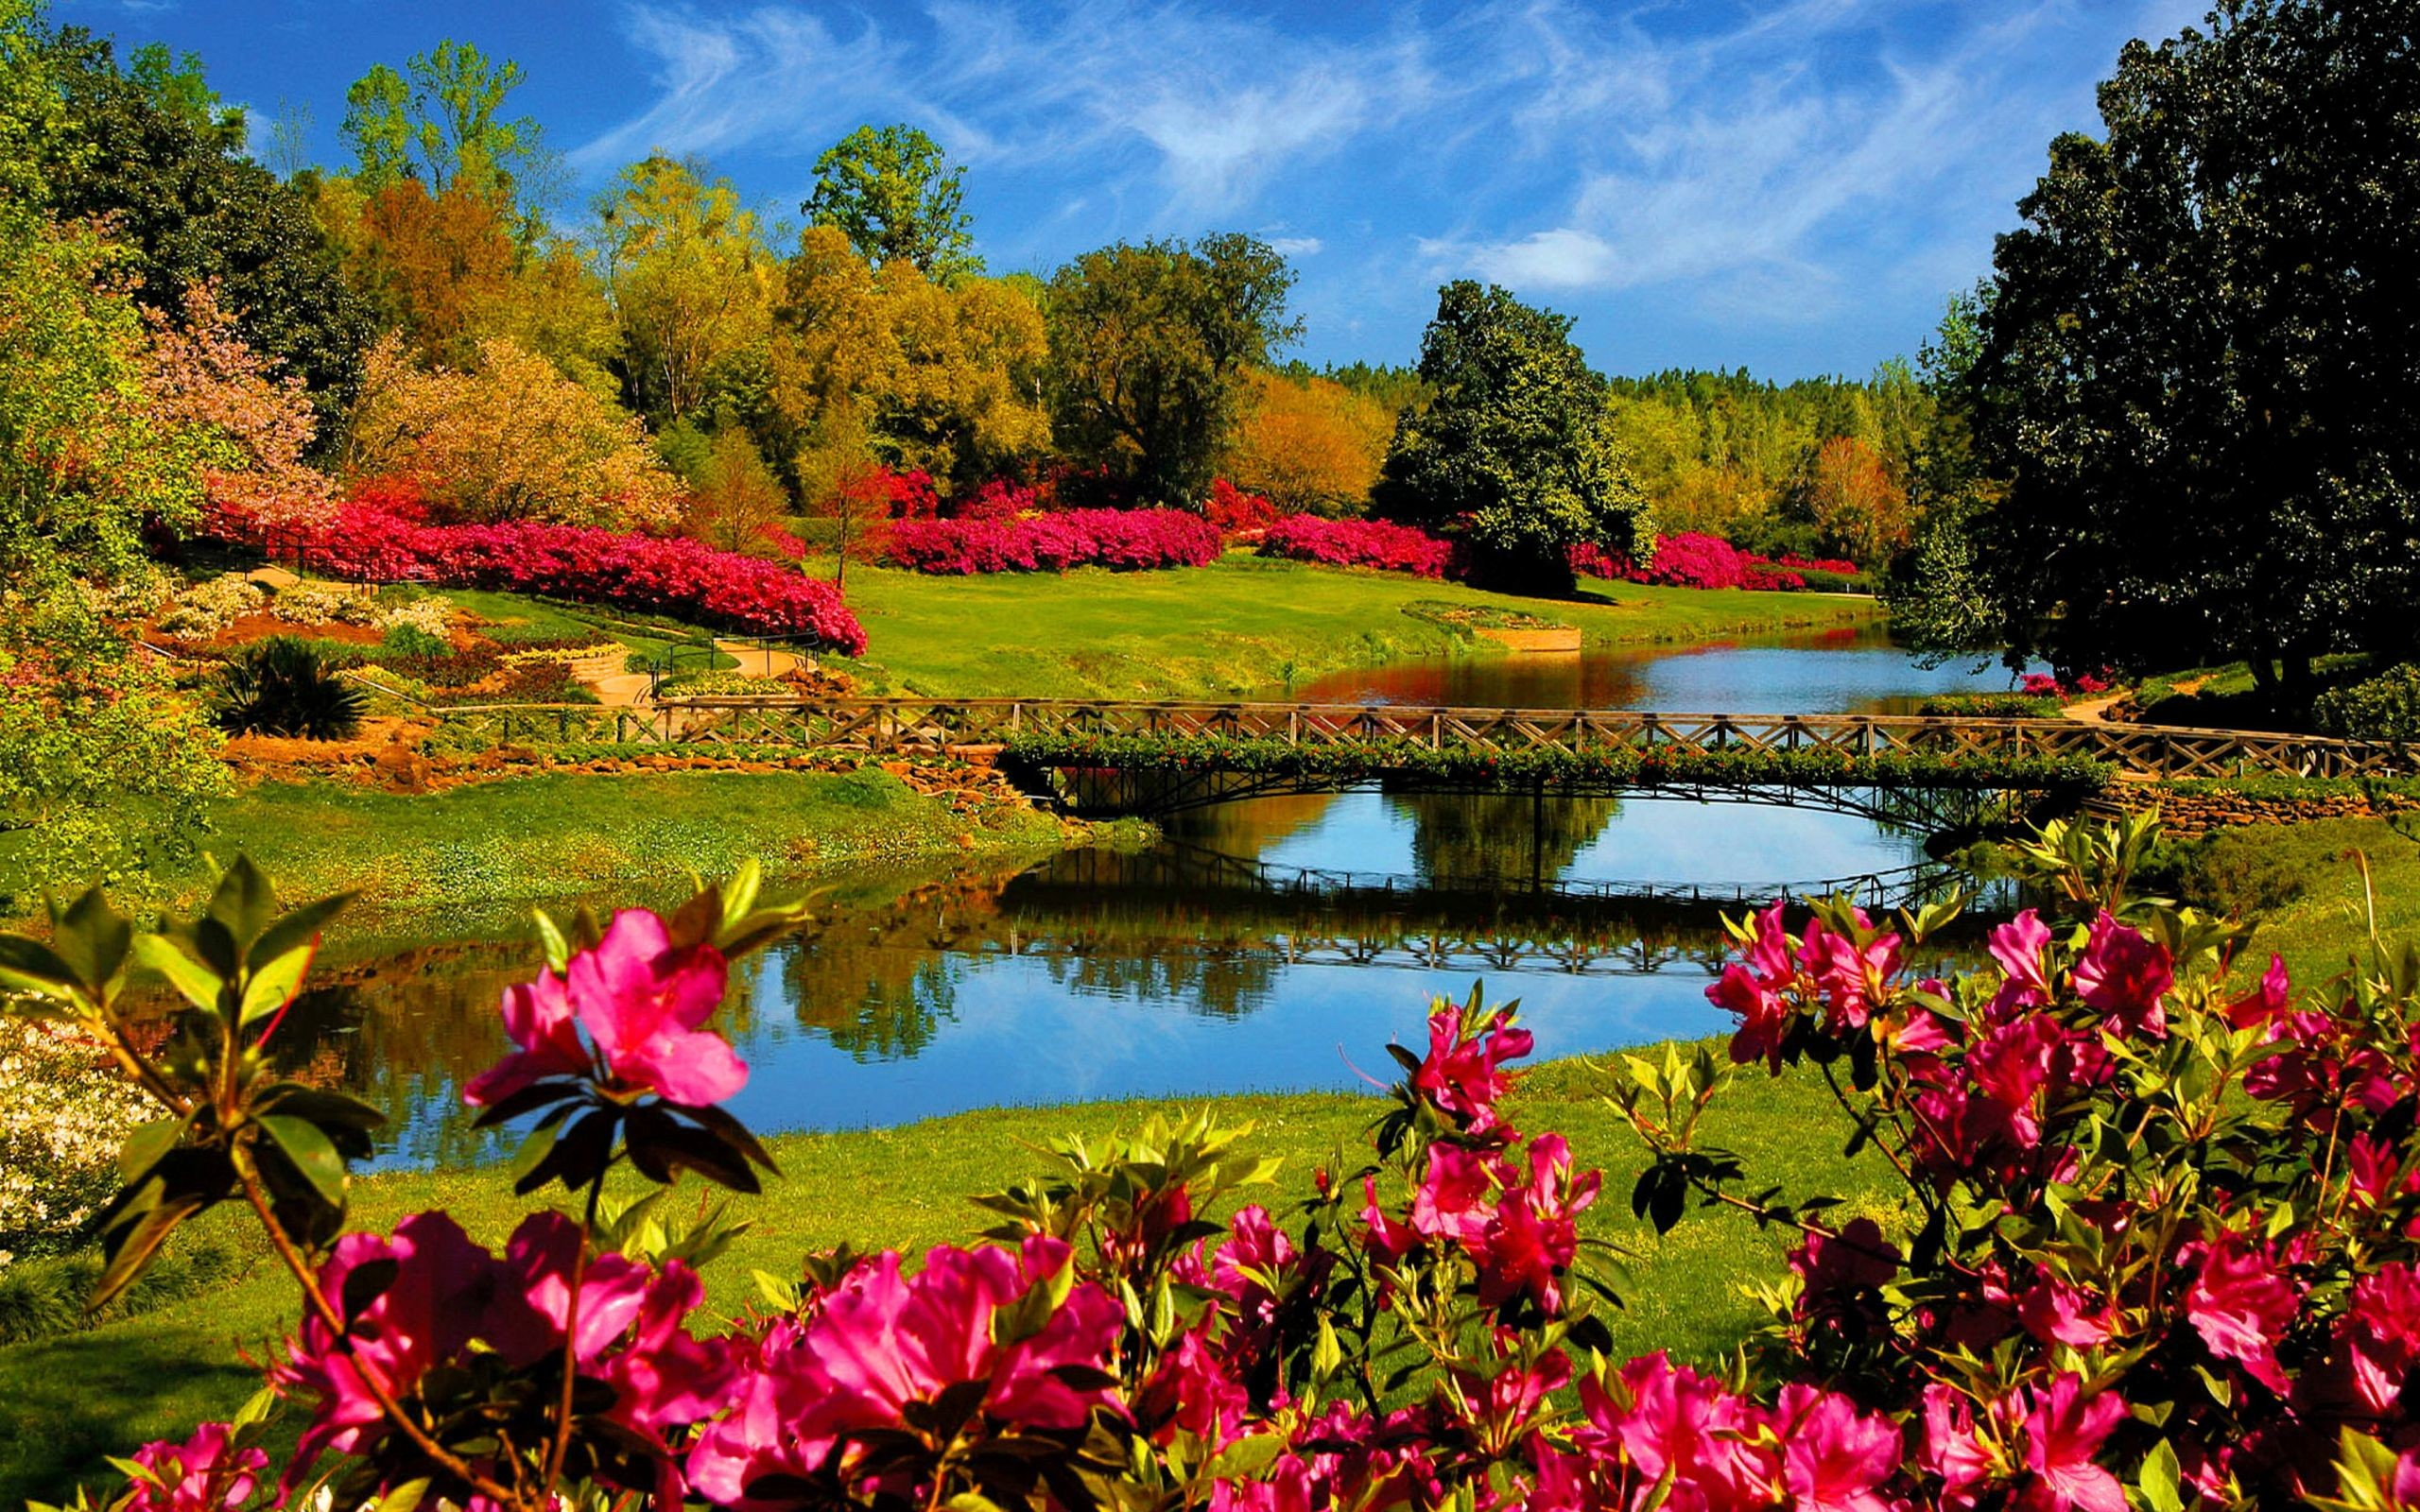 Res: 2560x1600, Hd Wallpapers Nature Spring Background 1 HD Wallpapers